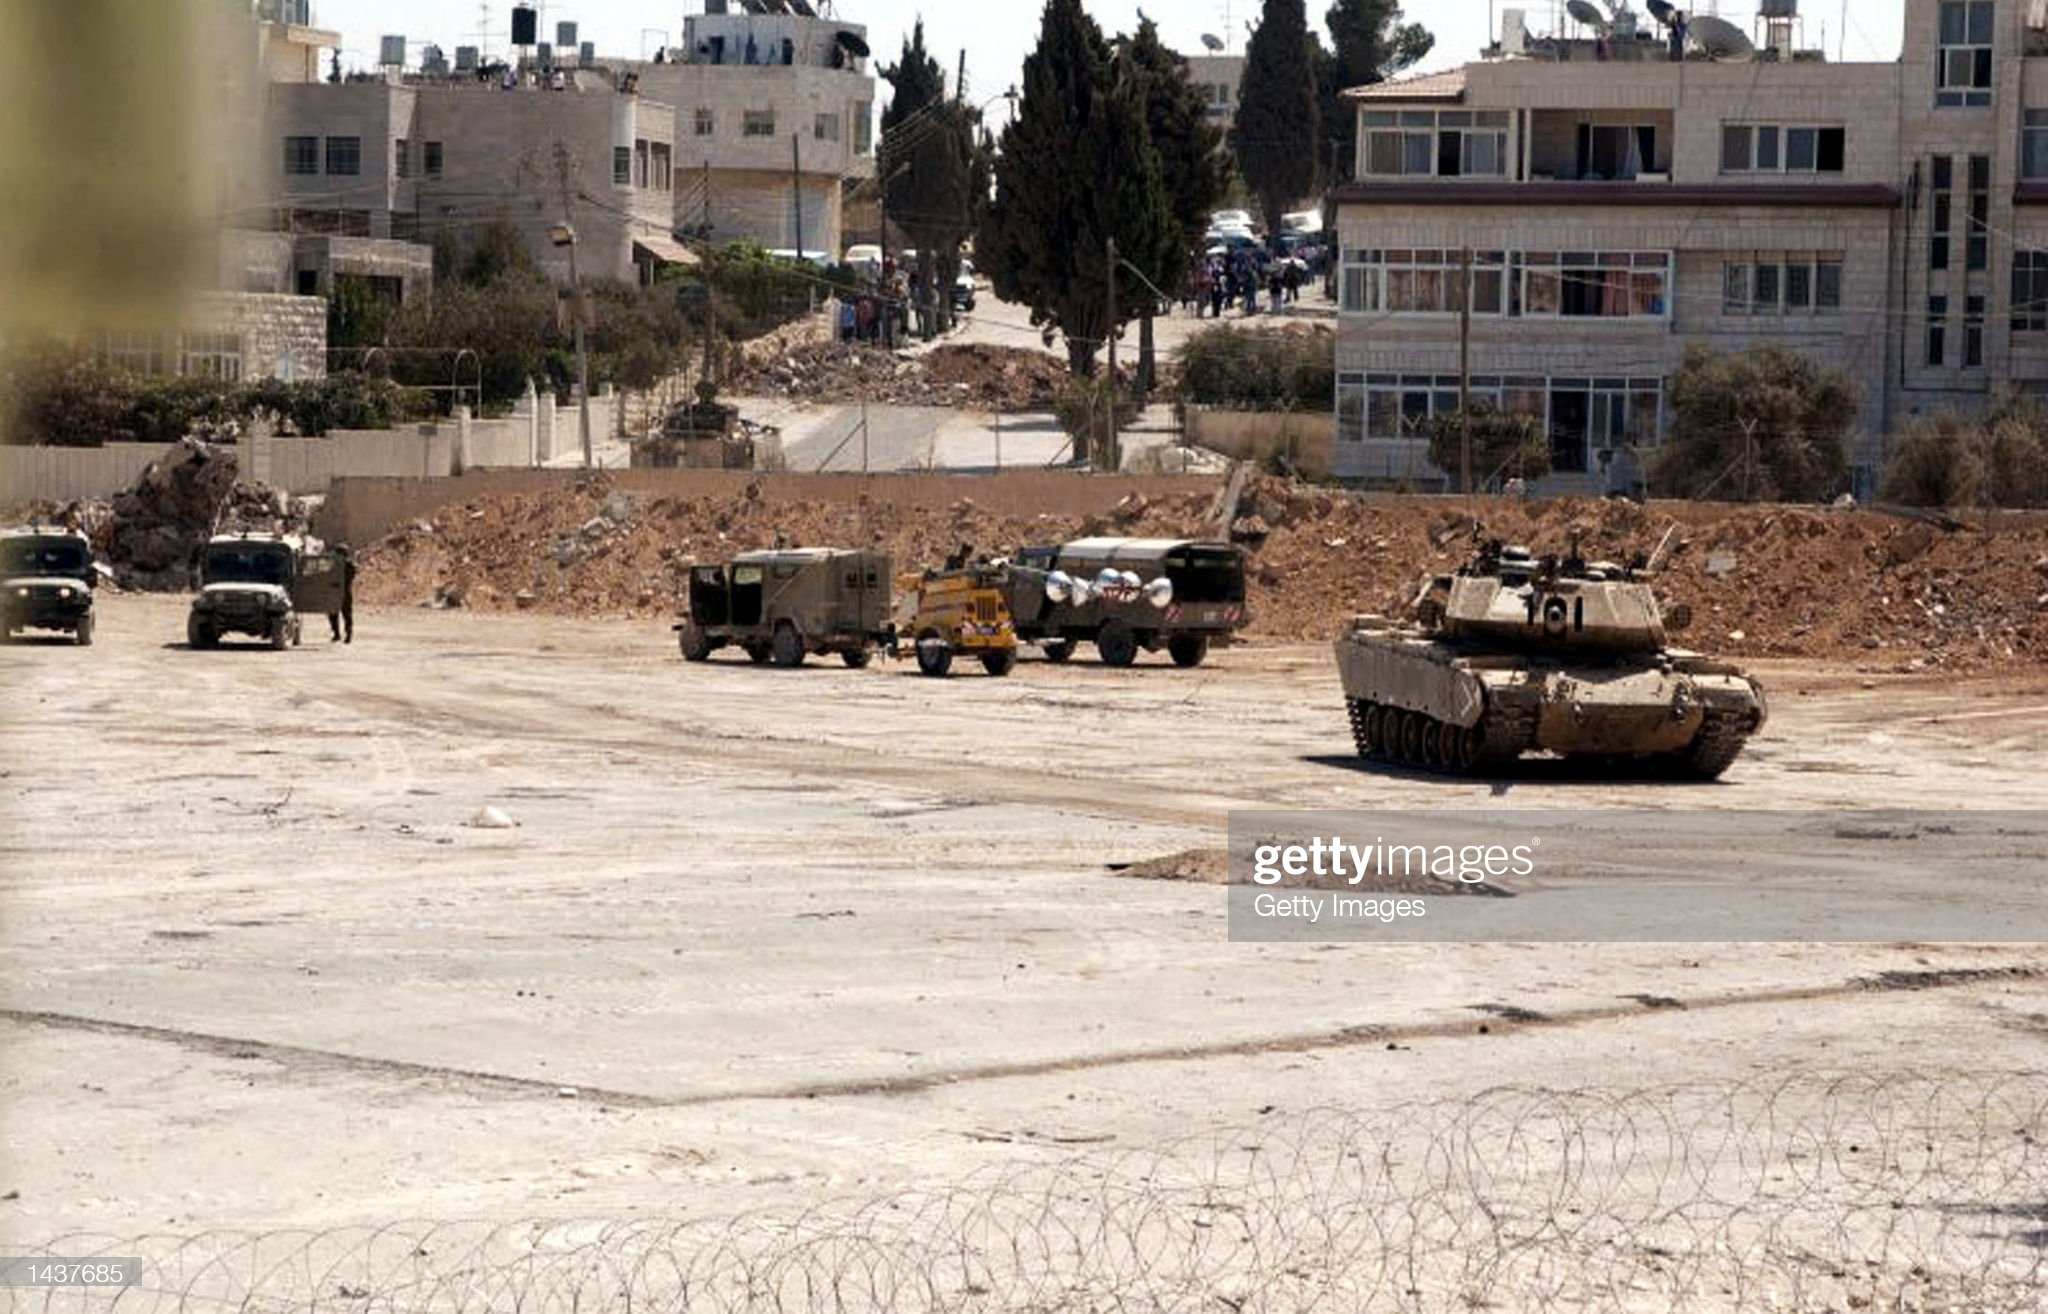 https://media.gettyimages.com/photos/israeli-tanks-pull-out-of-palestinian-leader-yasser-arafats-mukataa-picture-id1437685?s=2048x2048